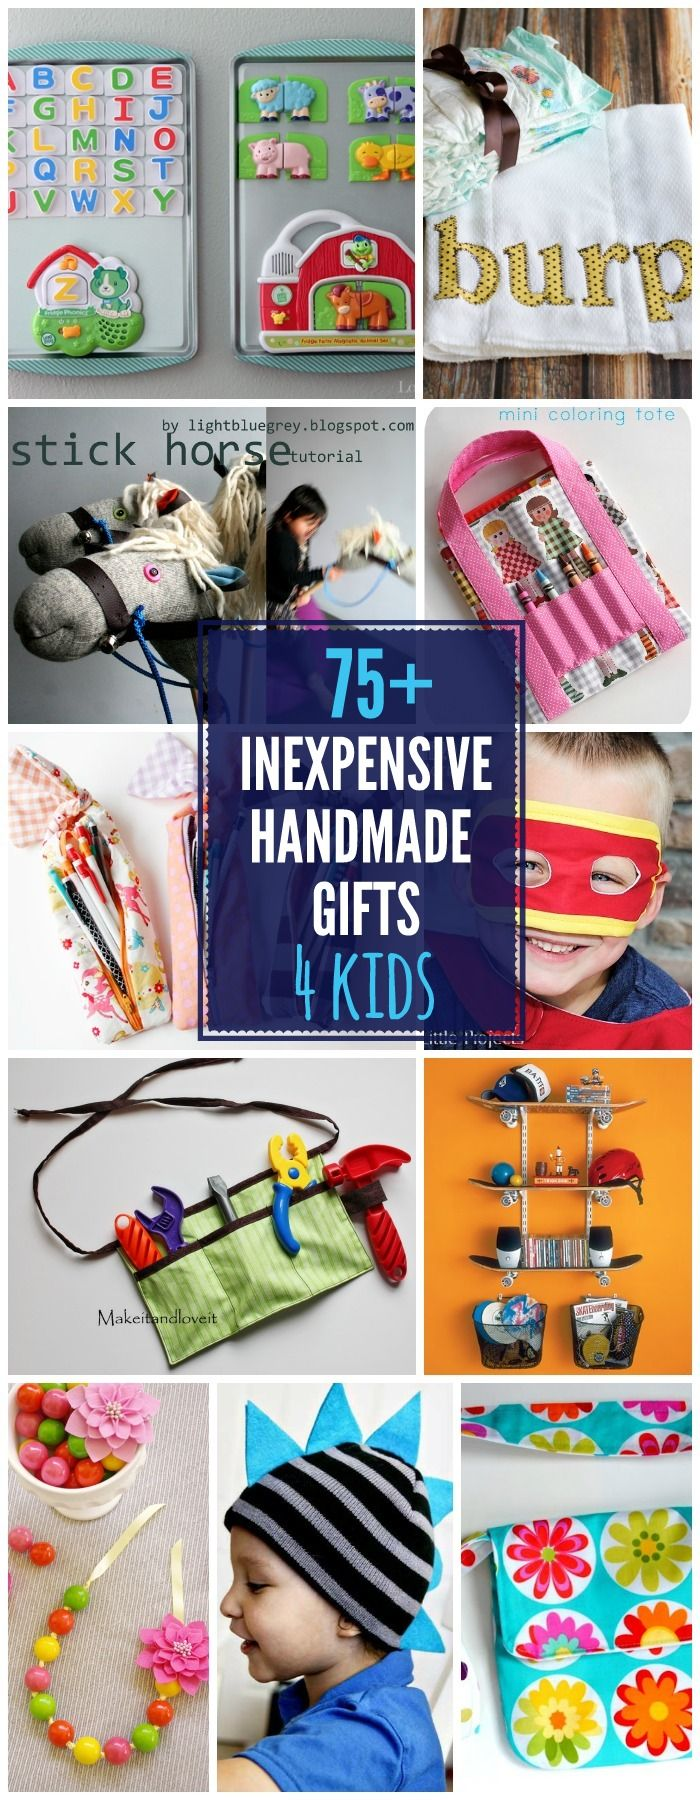 DIY Gifts Ideas : 75+ INEXPENSIVE Handmade Gifts for Kids - so many ...